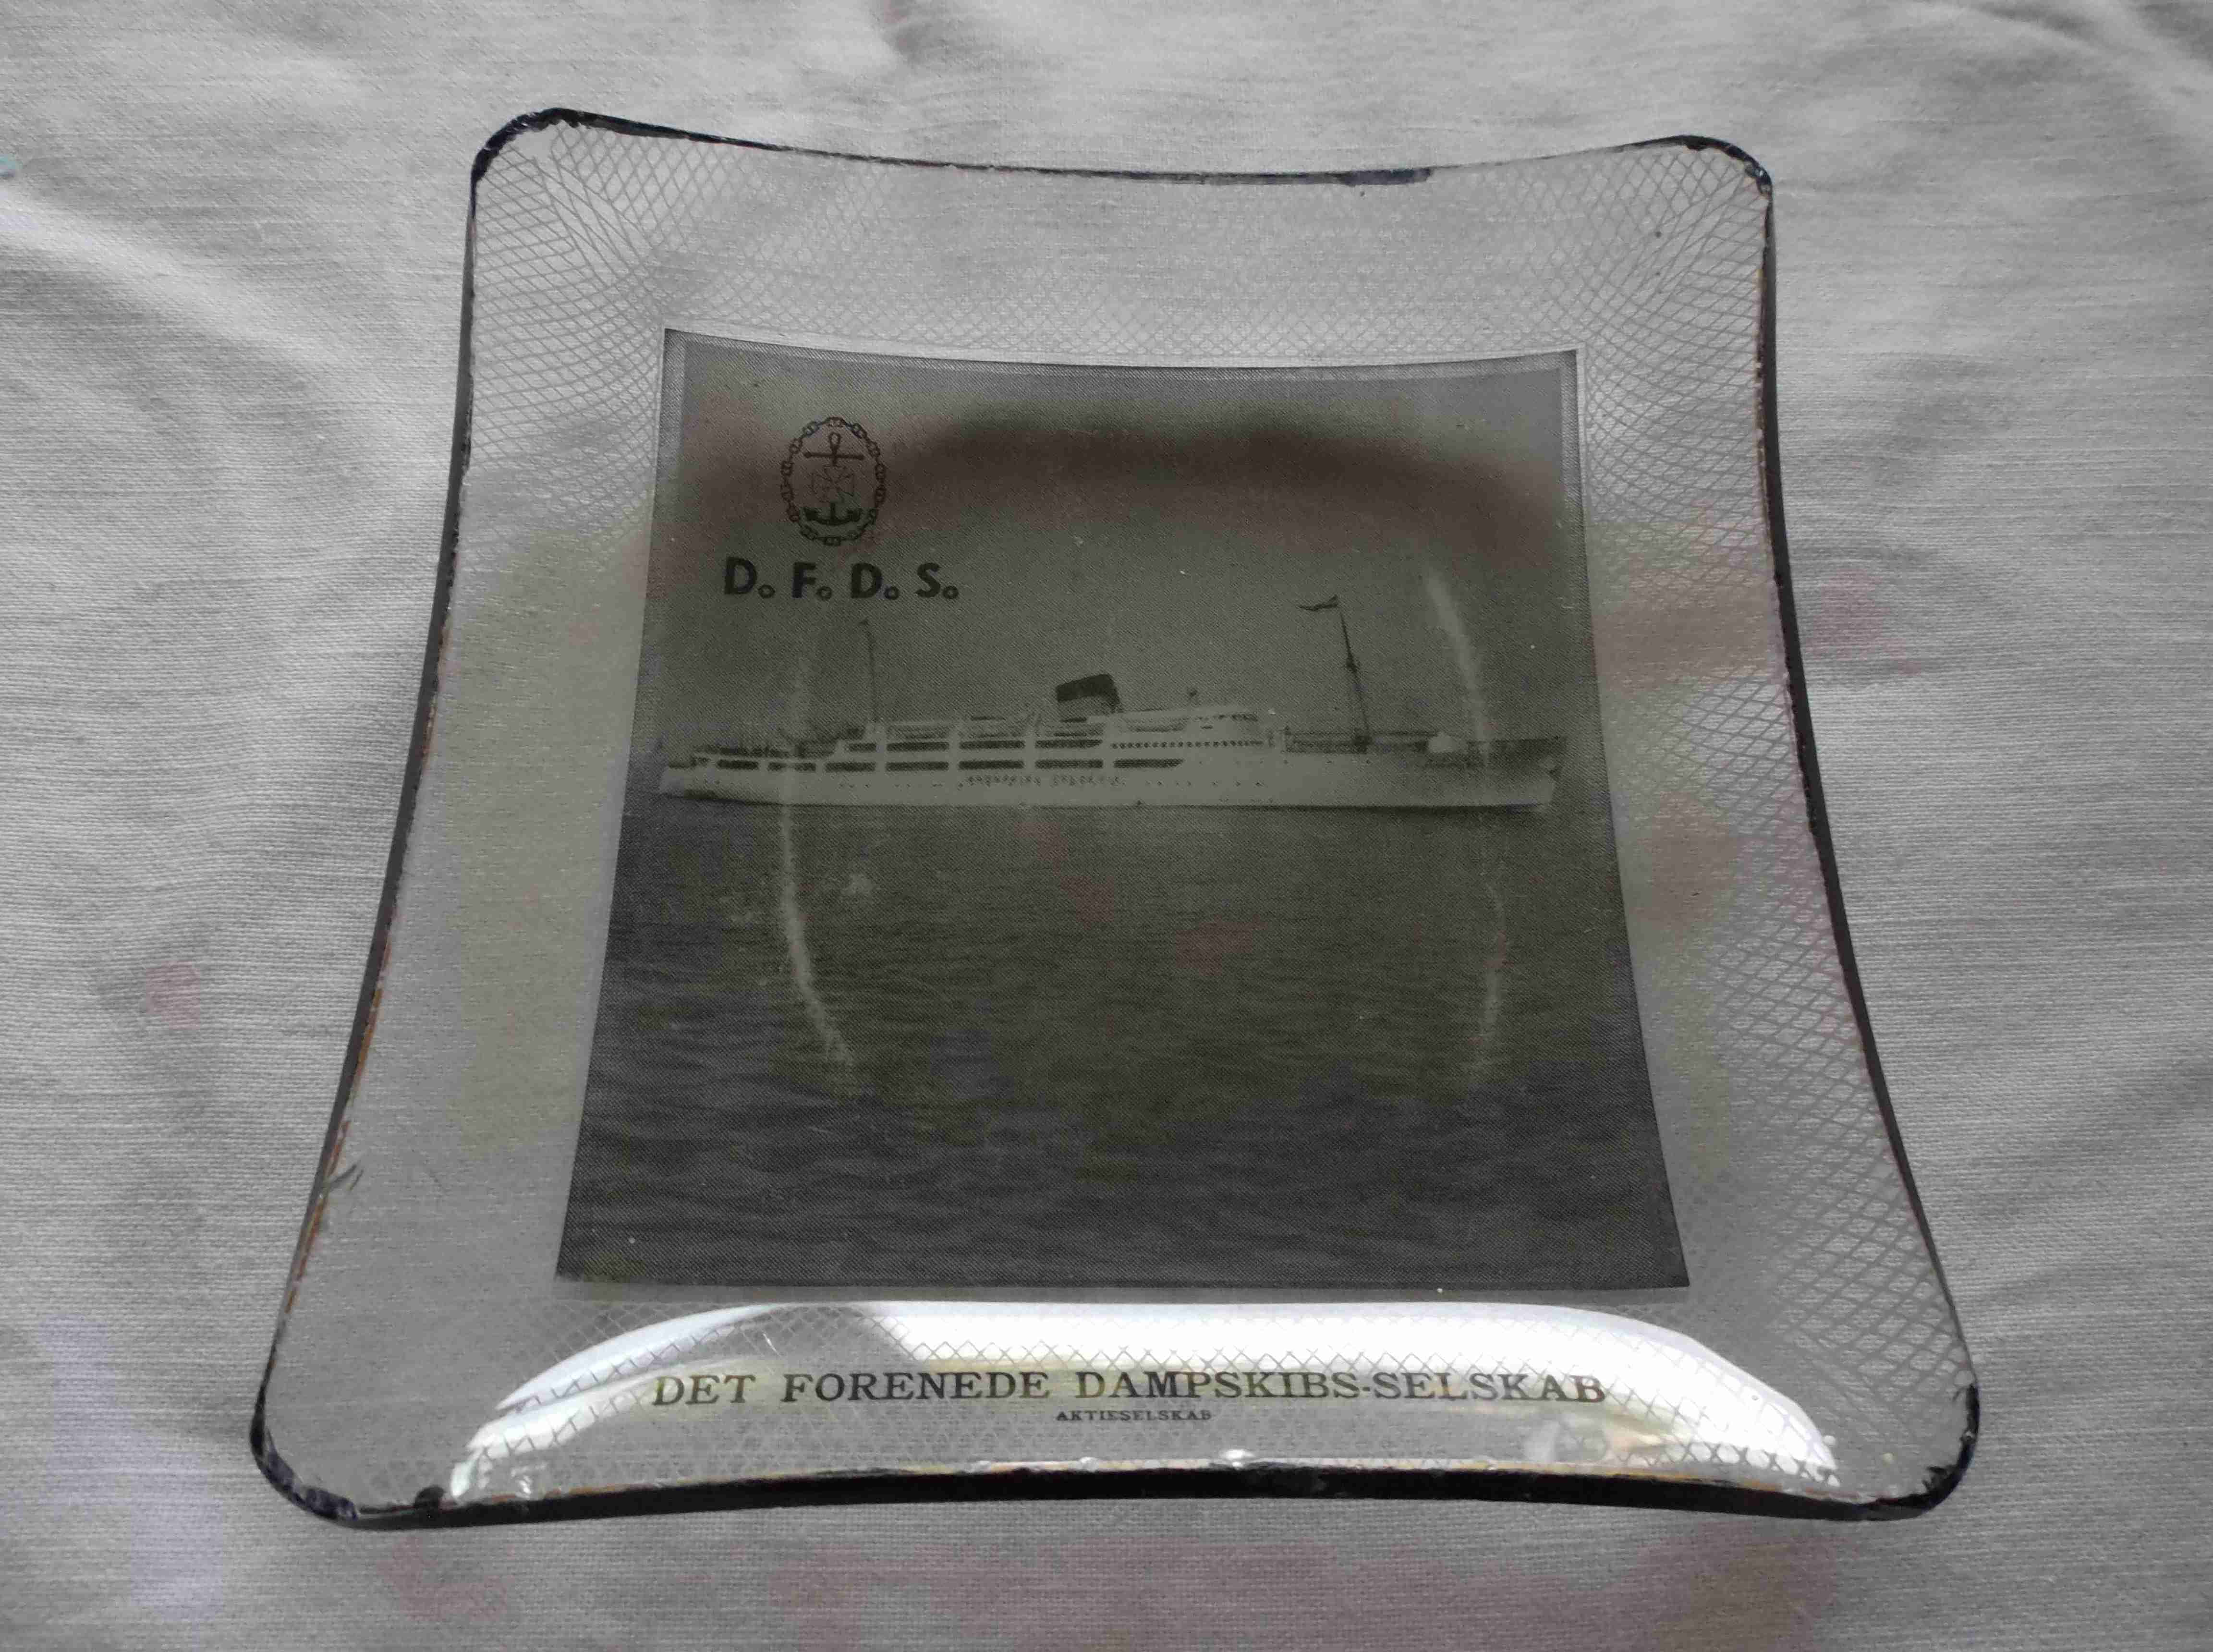 SQUARE GLASS TABLE SIDE DISH FROM THE DFDS SHIPPING COMPANY